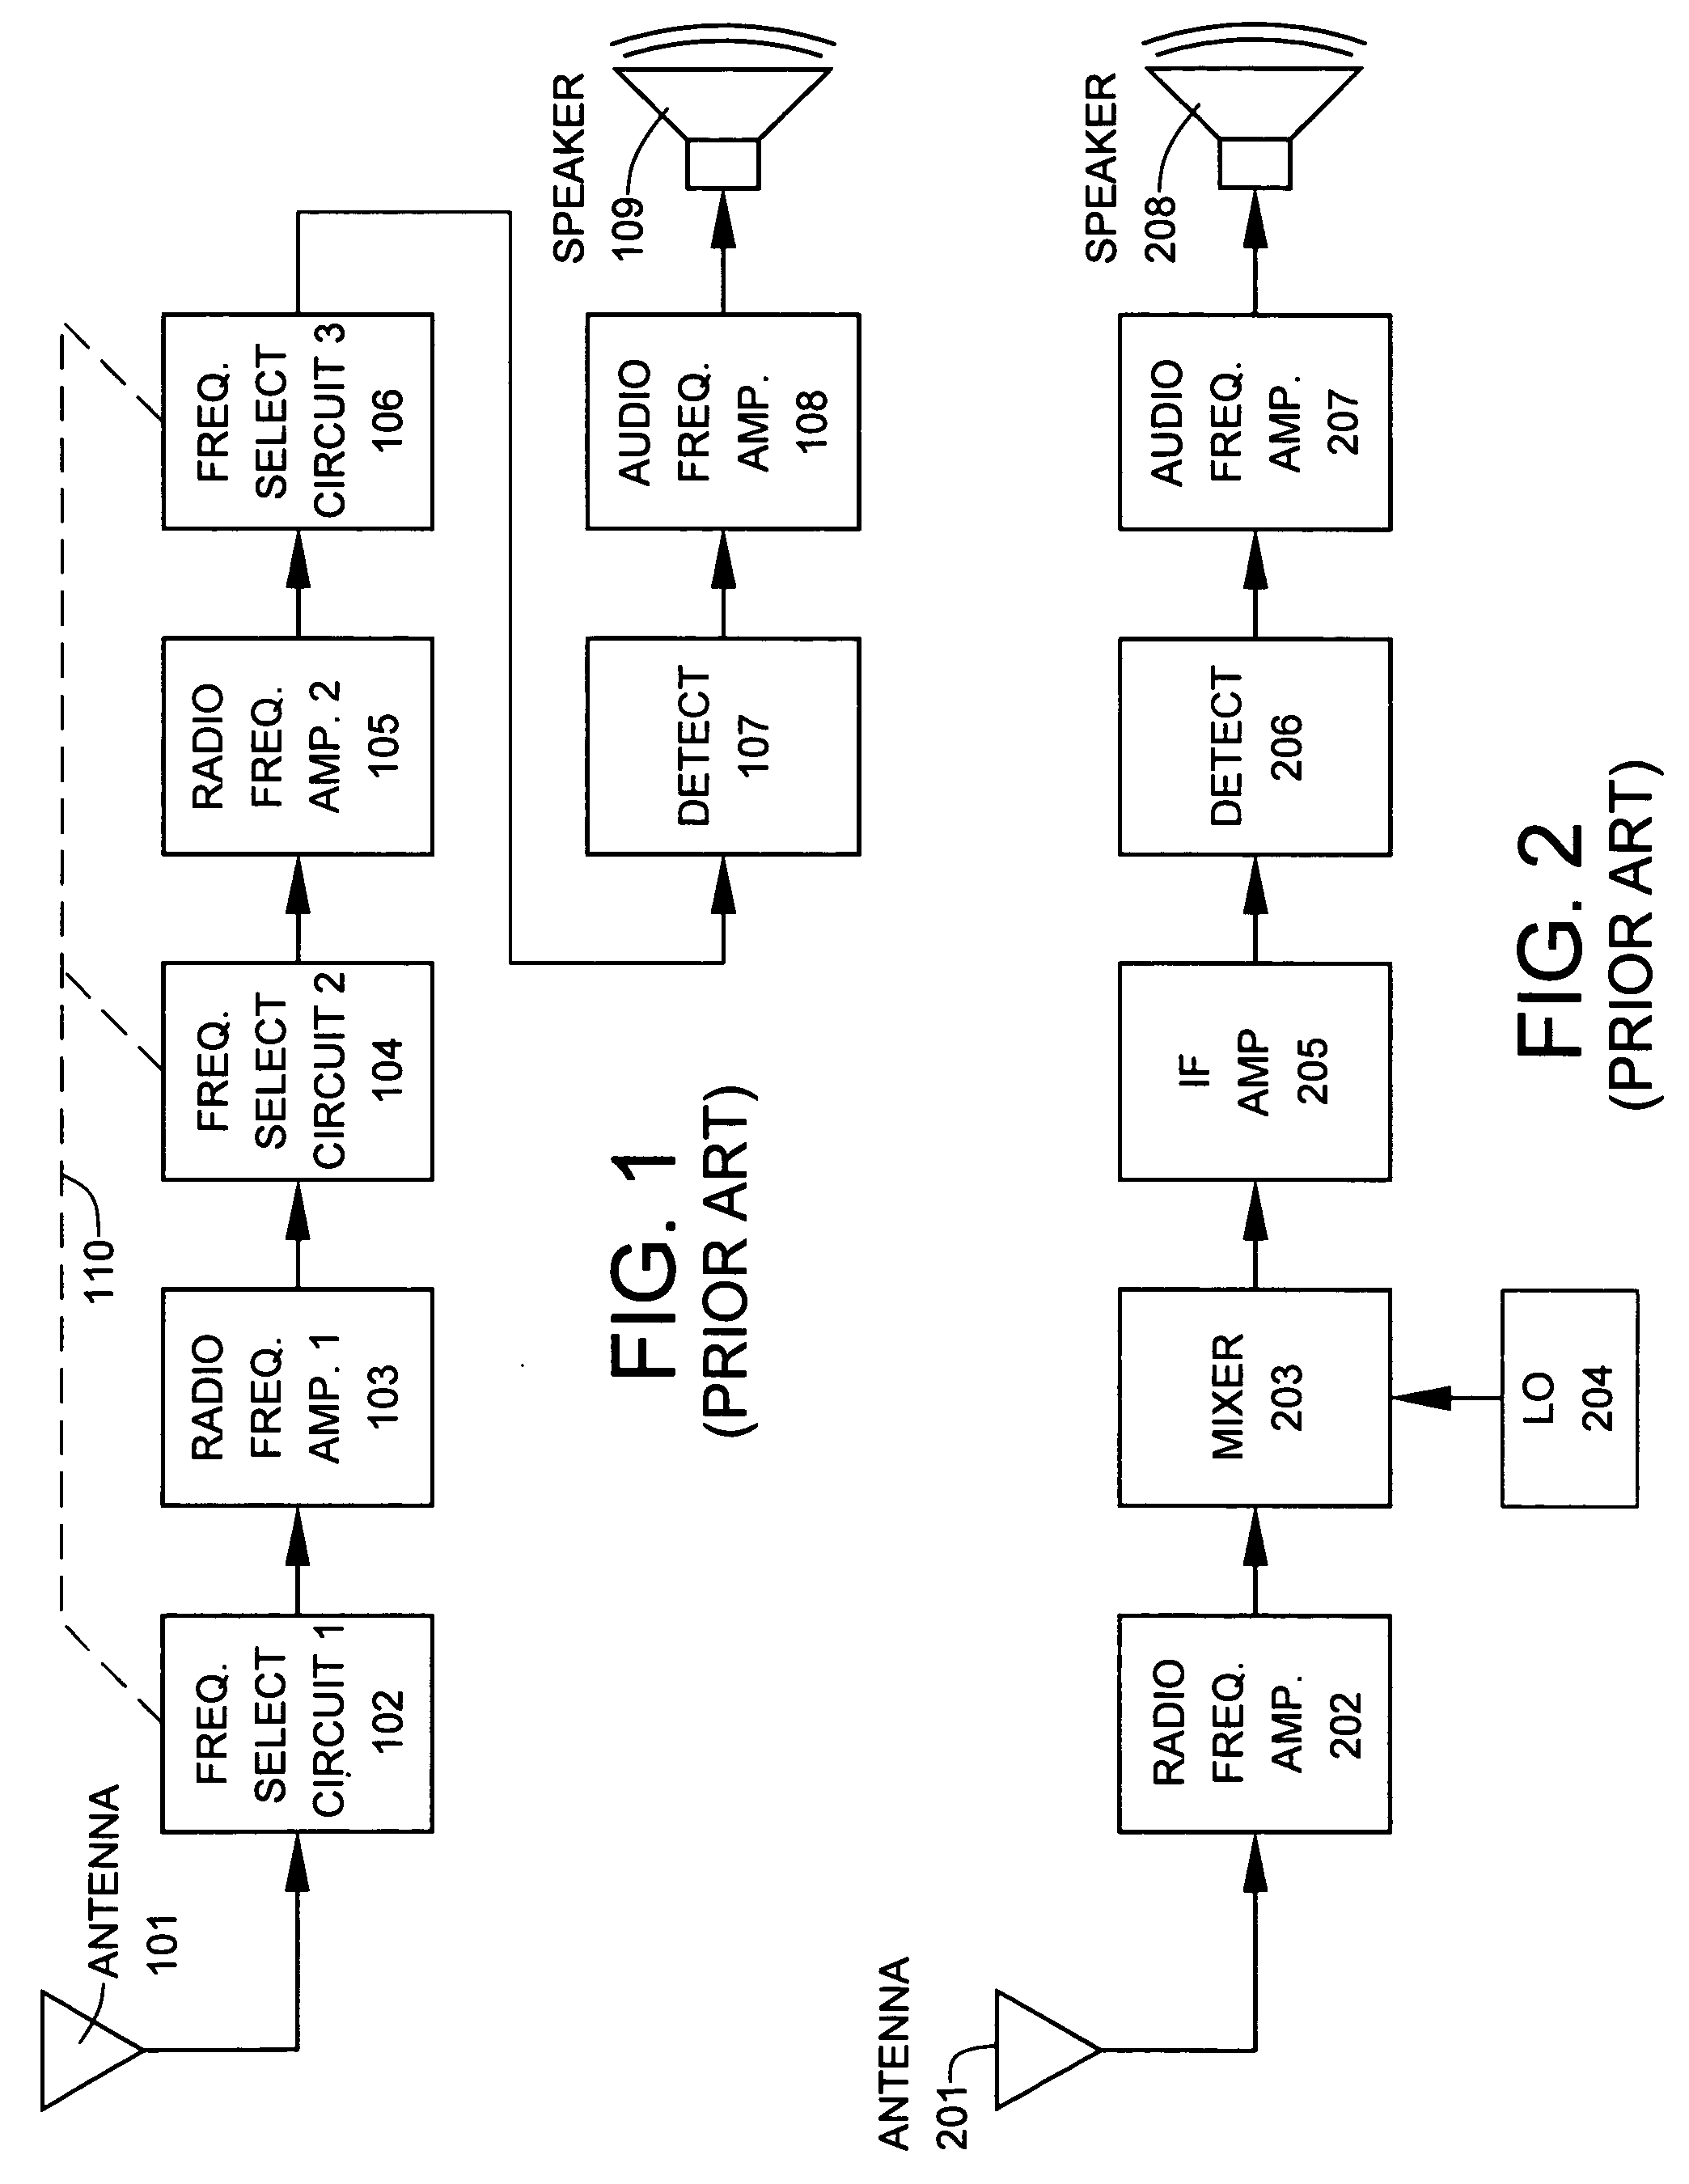 Us20070037546a1 Superheterodyne Receiver Having At Least One Tuned Radio Frequency Trf Circuit Diagram Downconversion Stage Empolying A Single Image Reject Filter And Both Low Side Injection